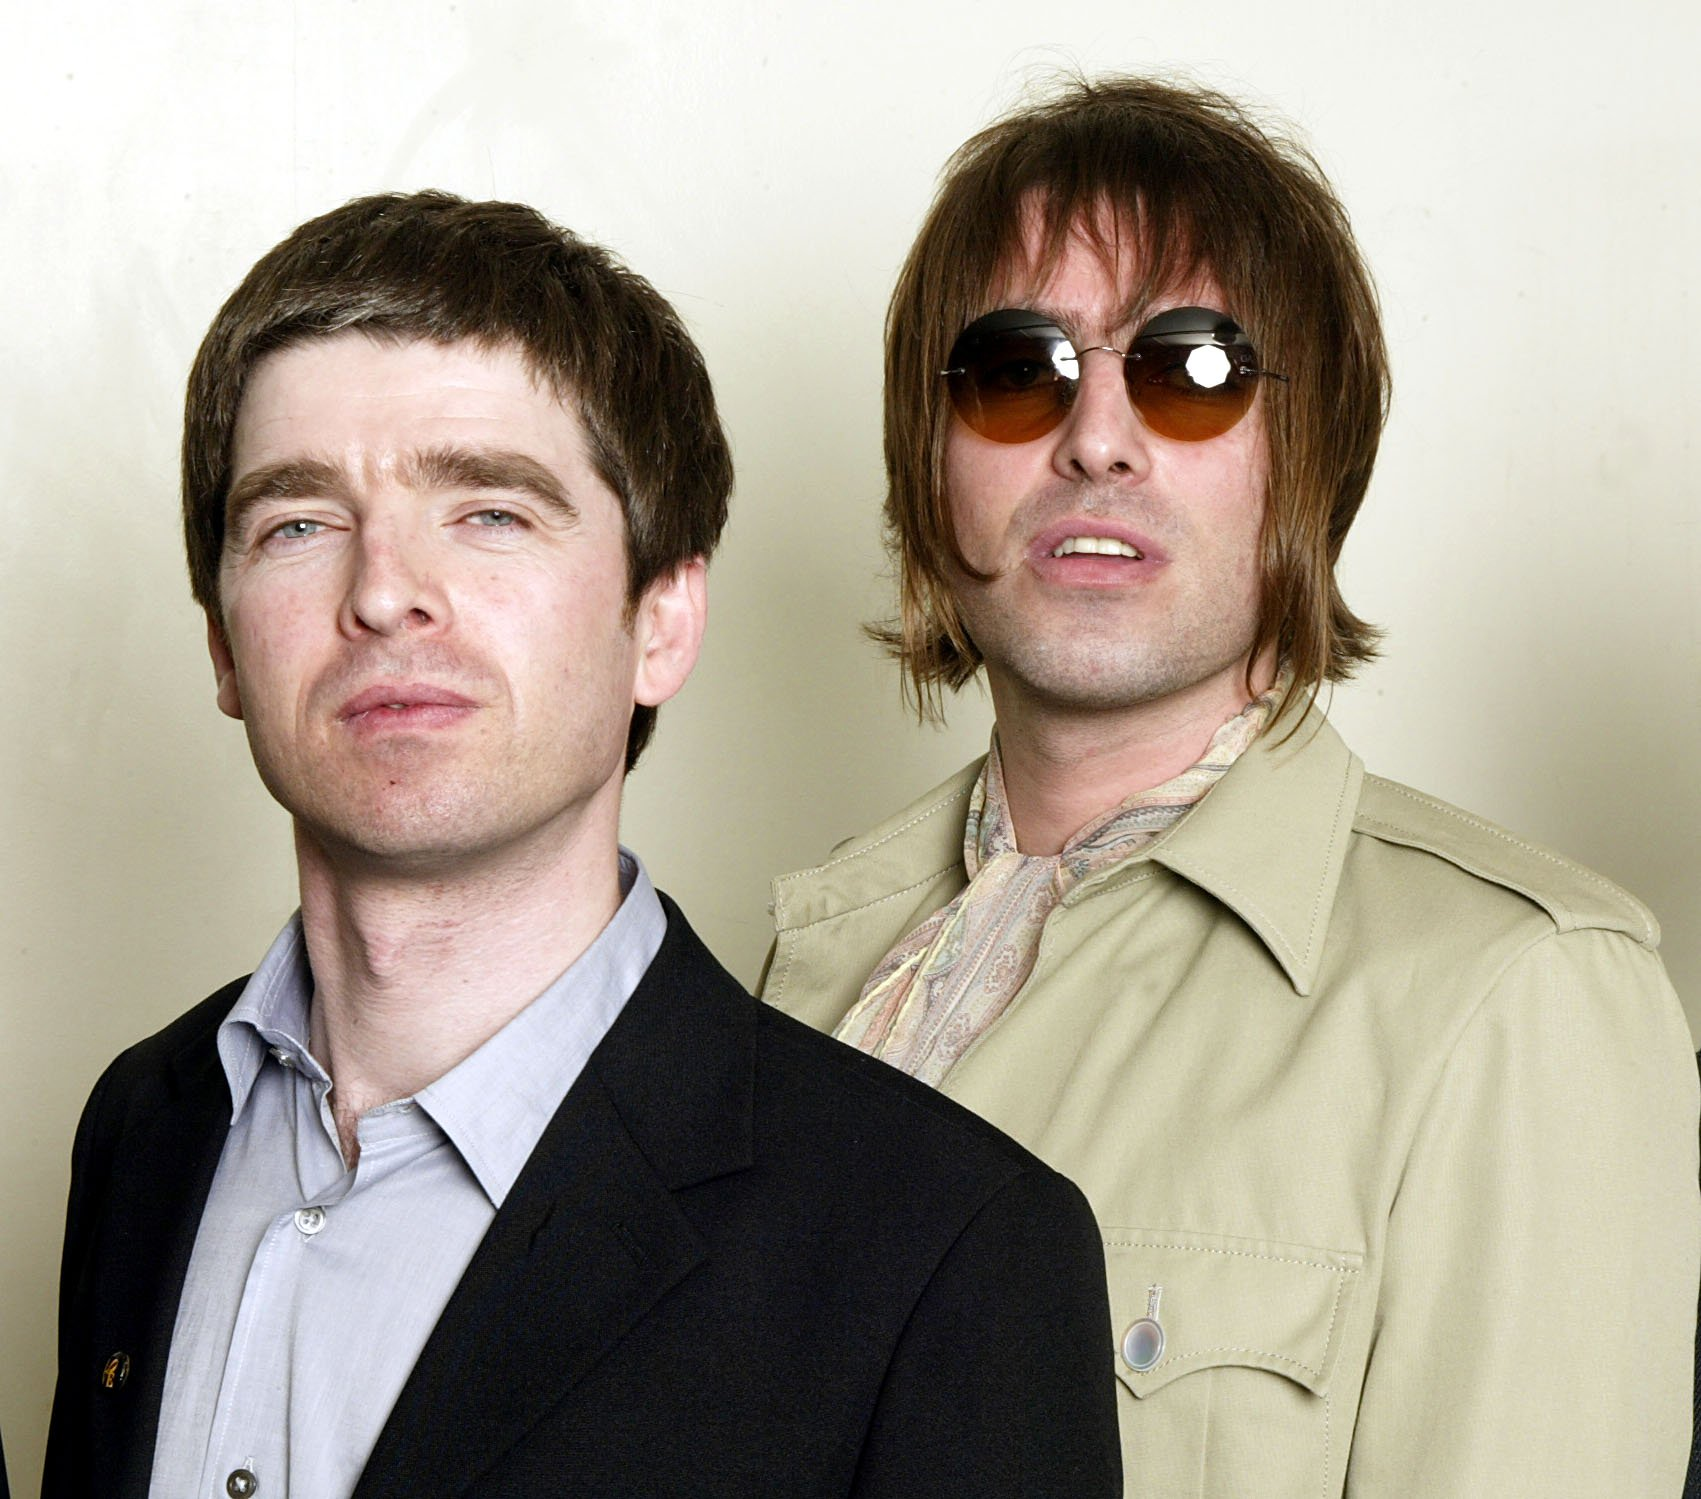 LONDON - MARCH 26: Noel and Liam Gallagher of rock band Oasis attend a charity concert for theTeenage Cancer Trust at the Royal Albert Hall on March 26, 2003 in London, England. Oasis performed at the event. (Photo by Dave Hogan/Getty Images)